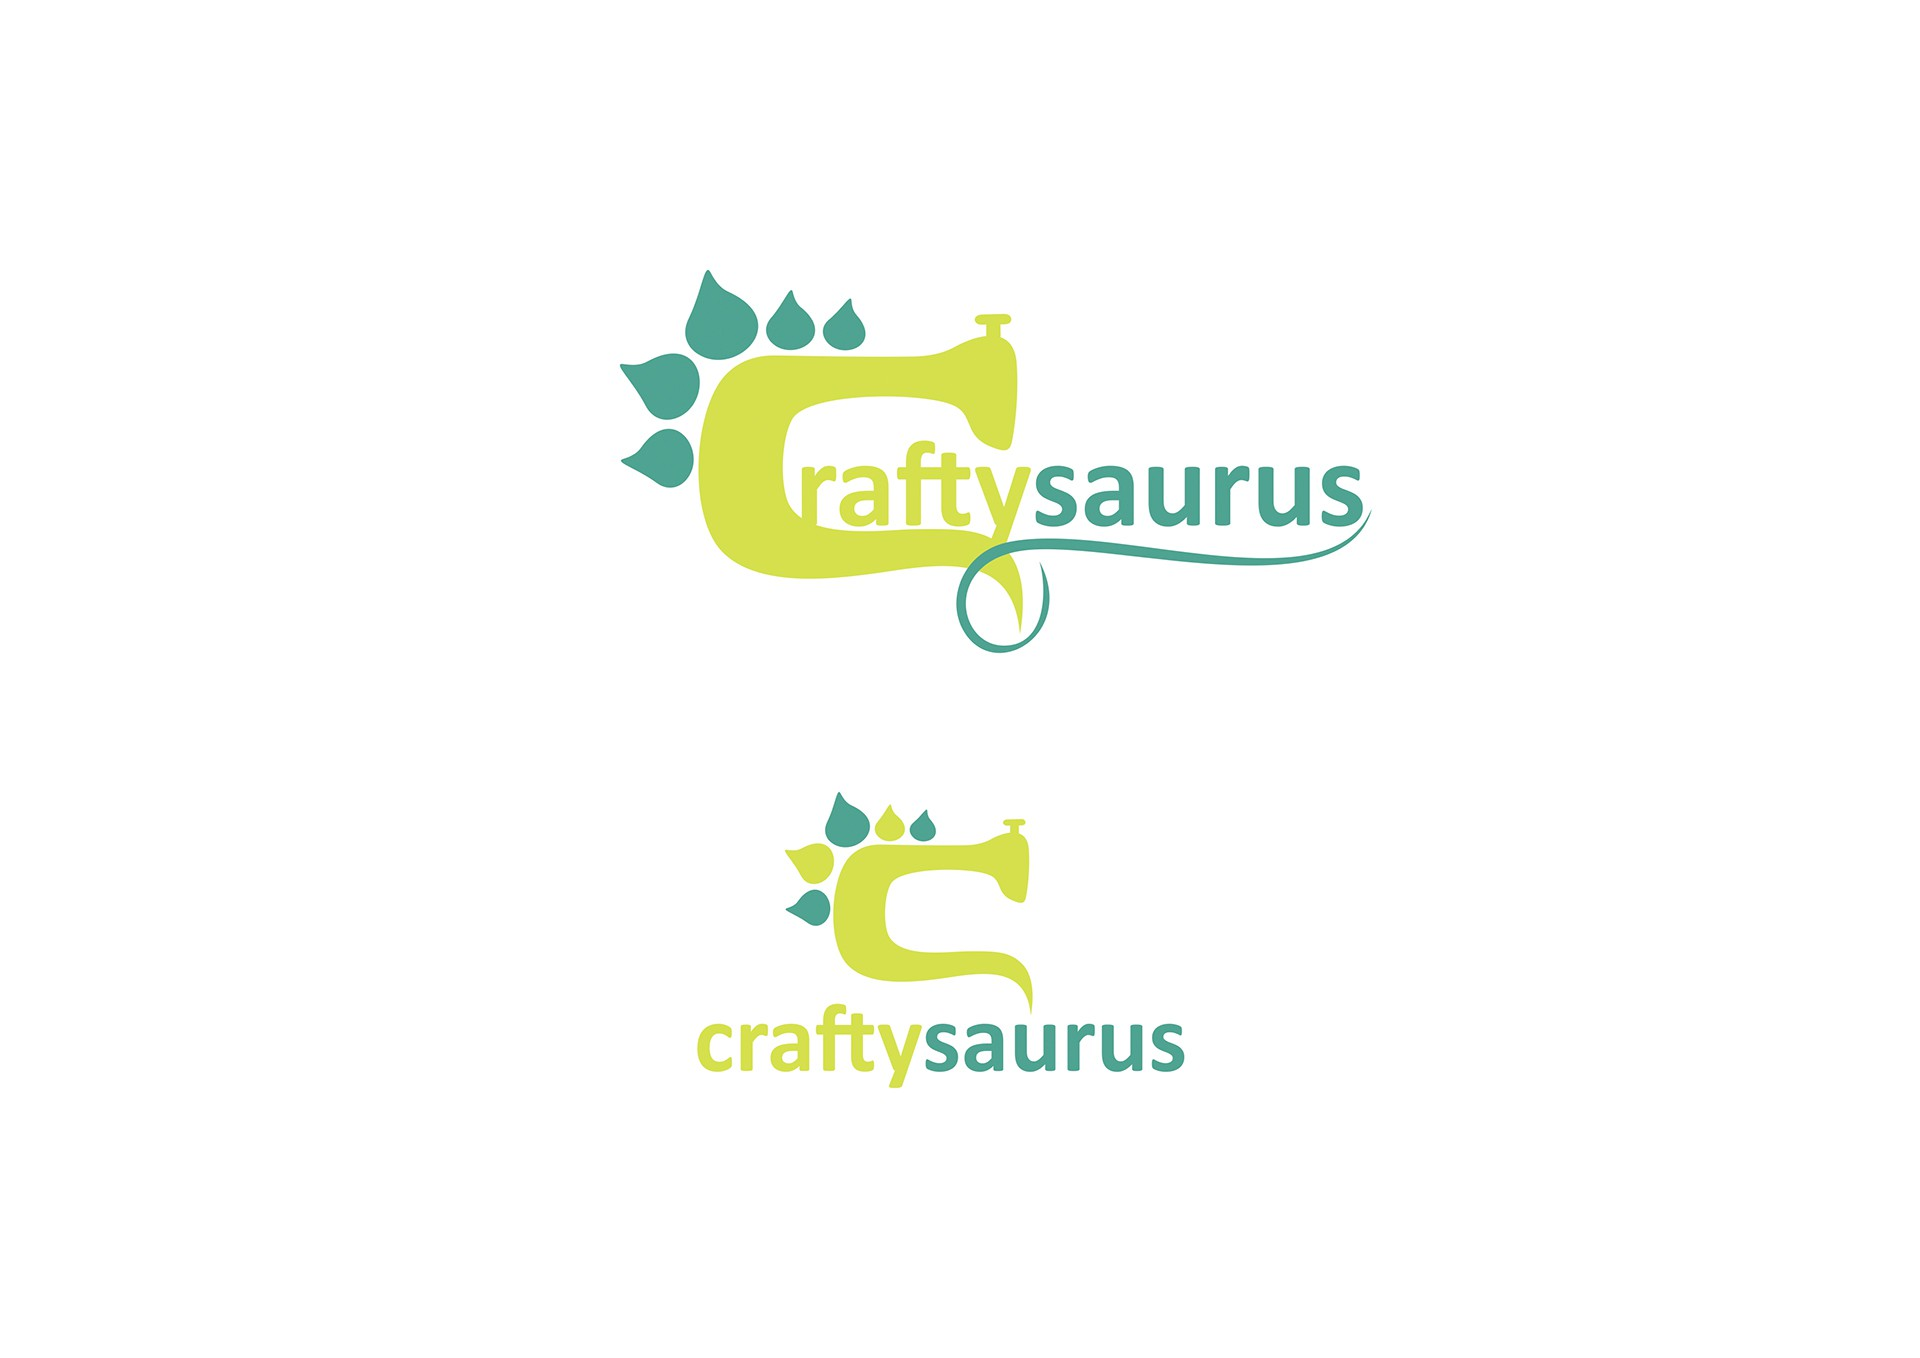 Design a logo/mark for a new network for crafters!